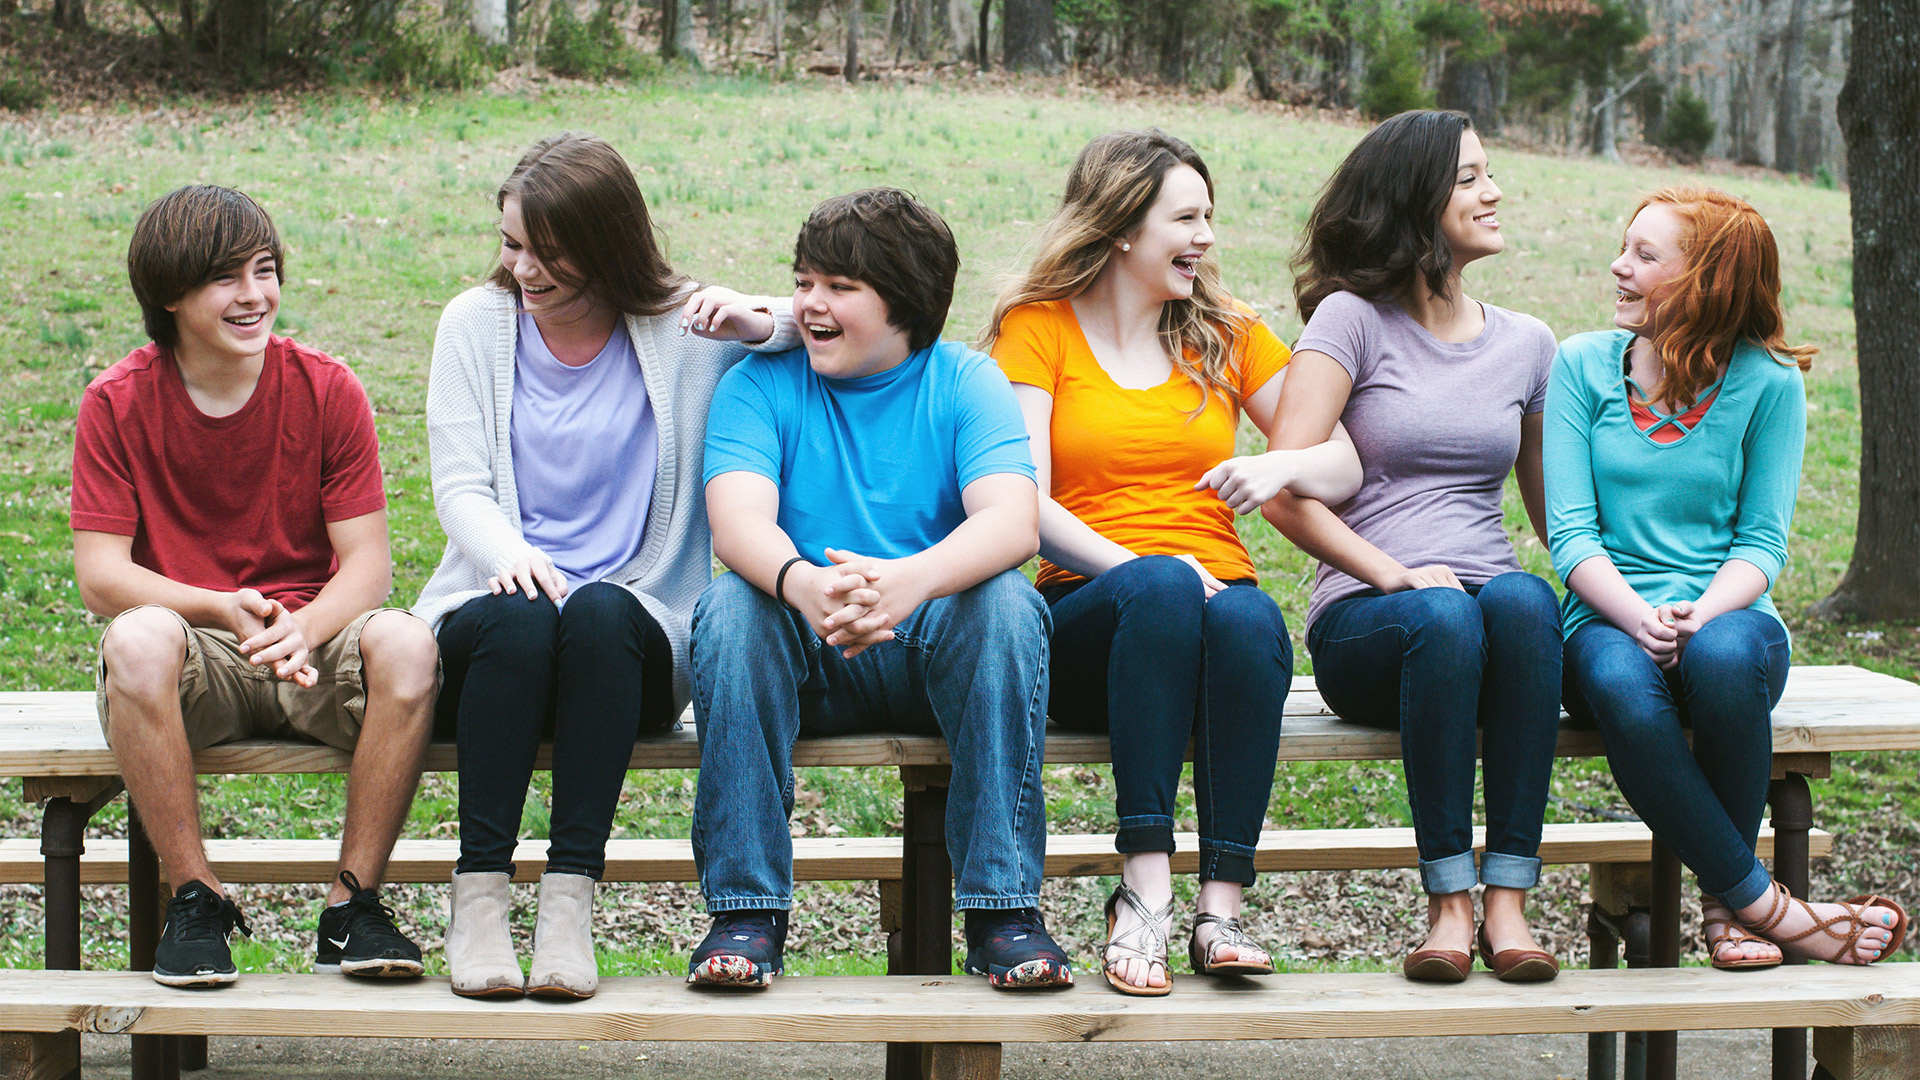 KIds smiling and laughing on a bench